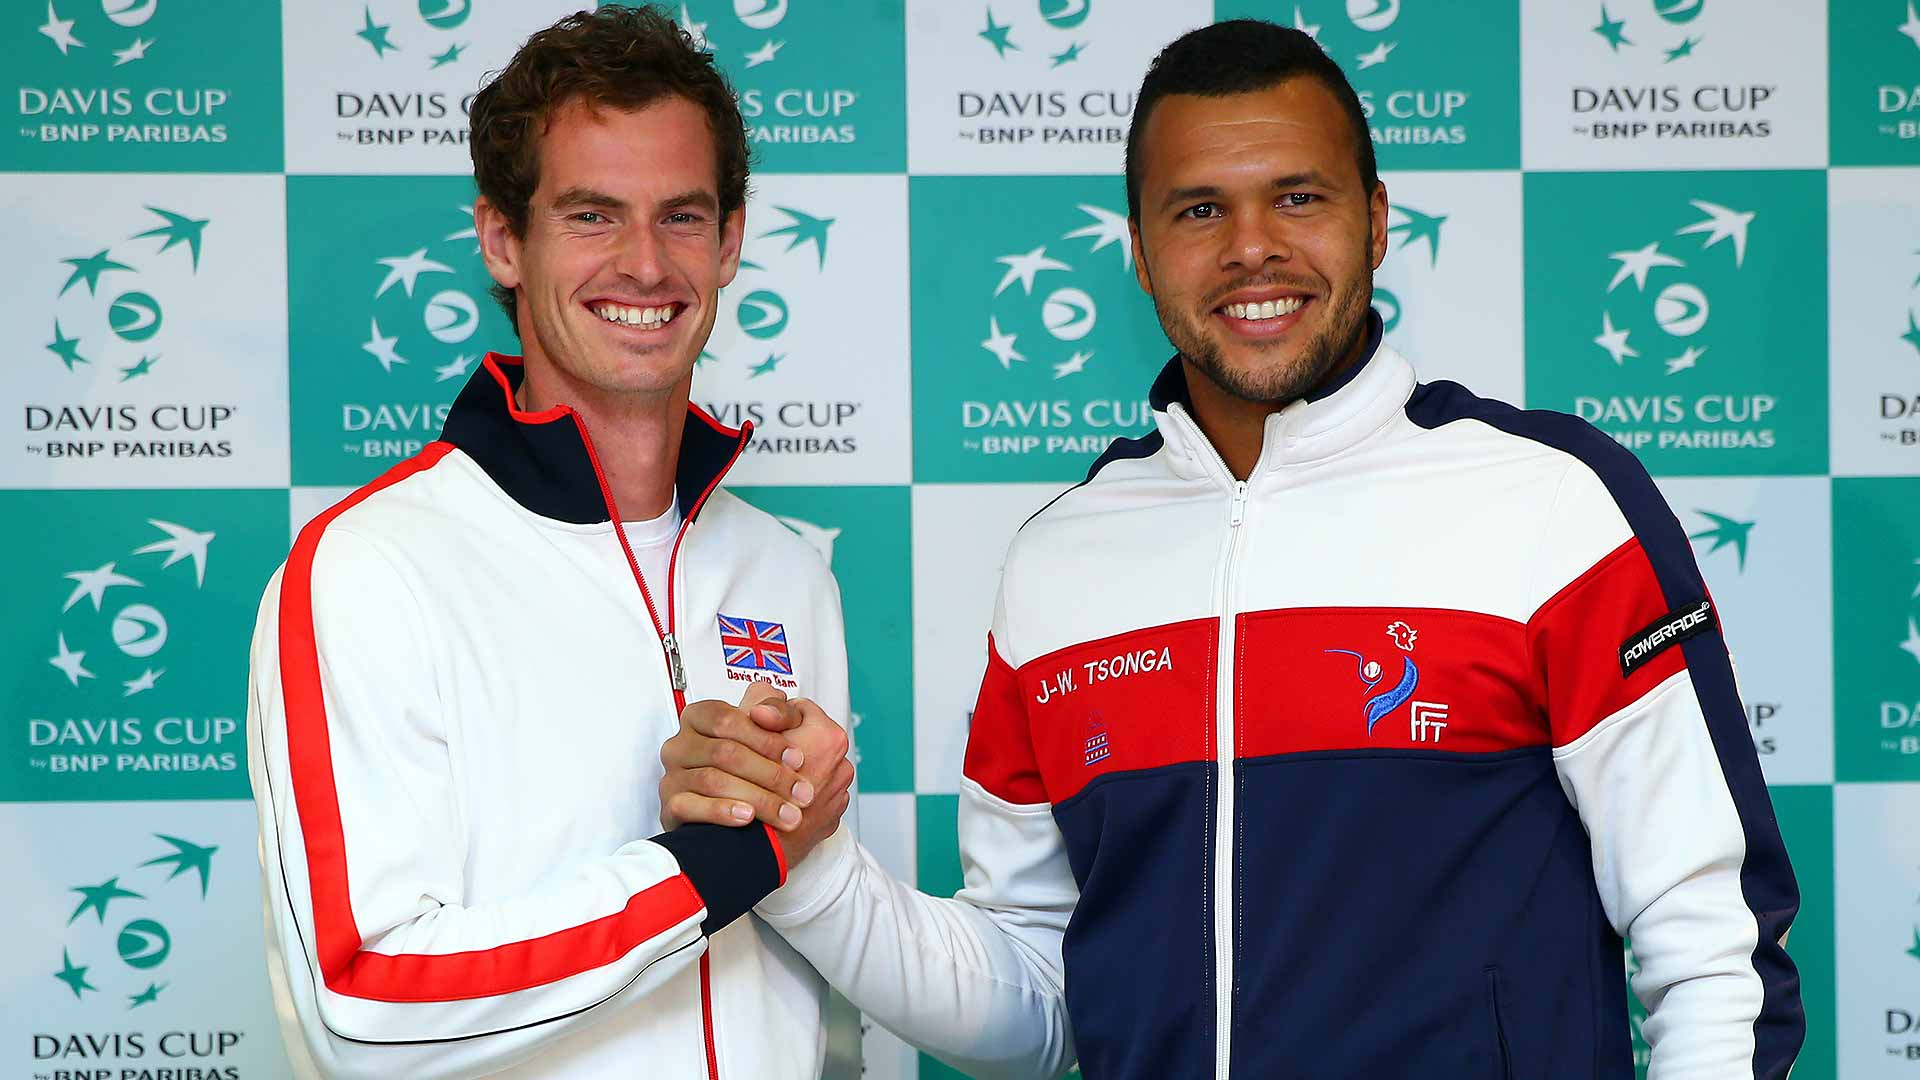 Murray, Tsonga